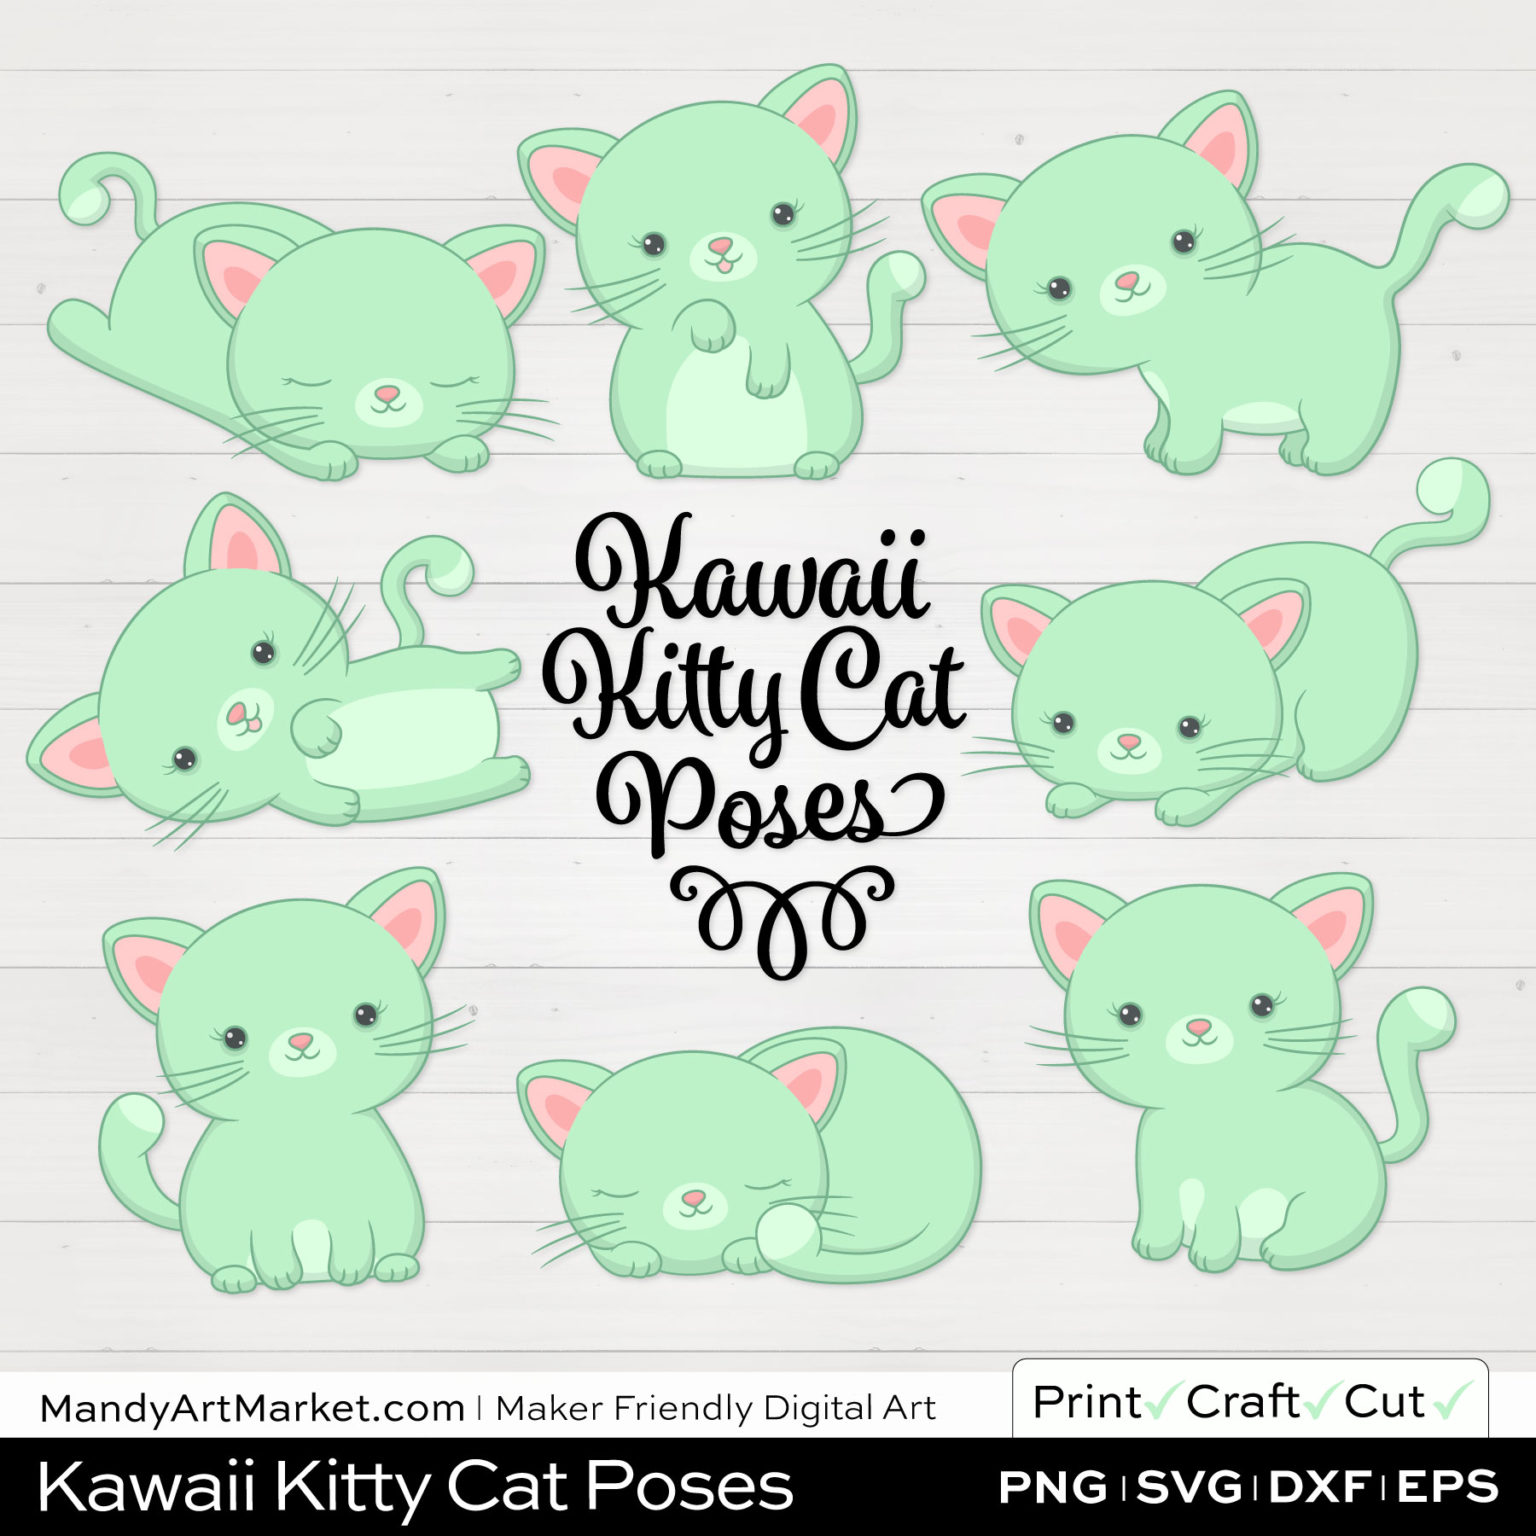 Mint Green Kawaii Kitty Cat Poses Clipart on White Background